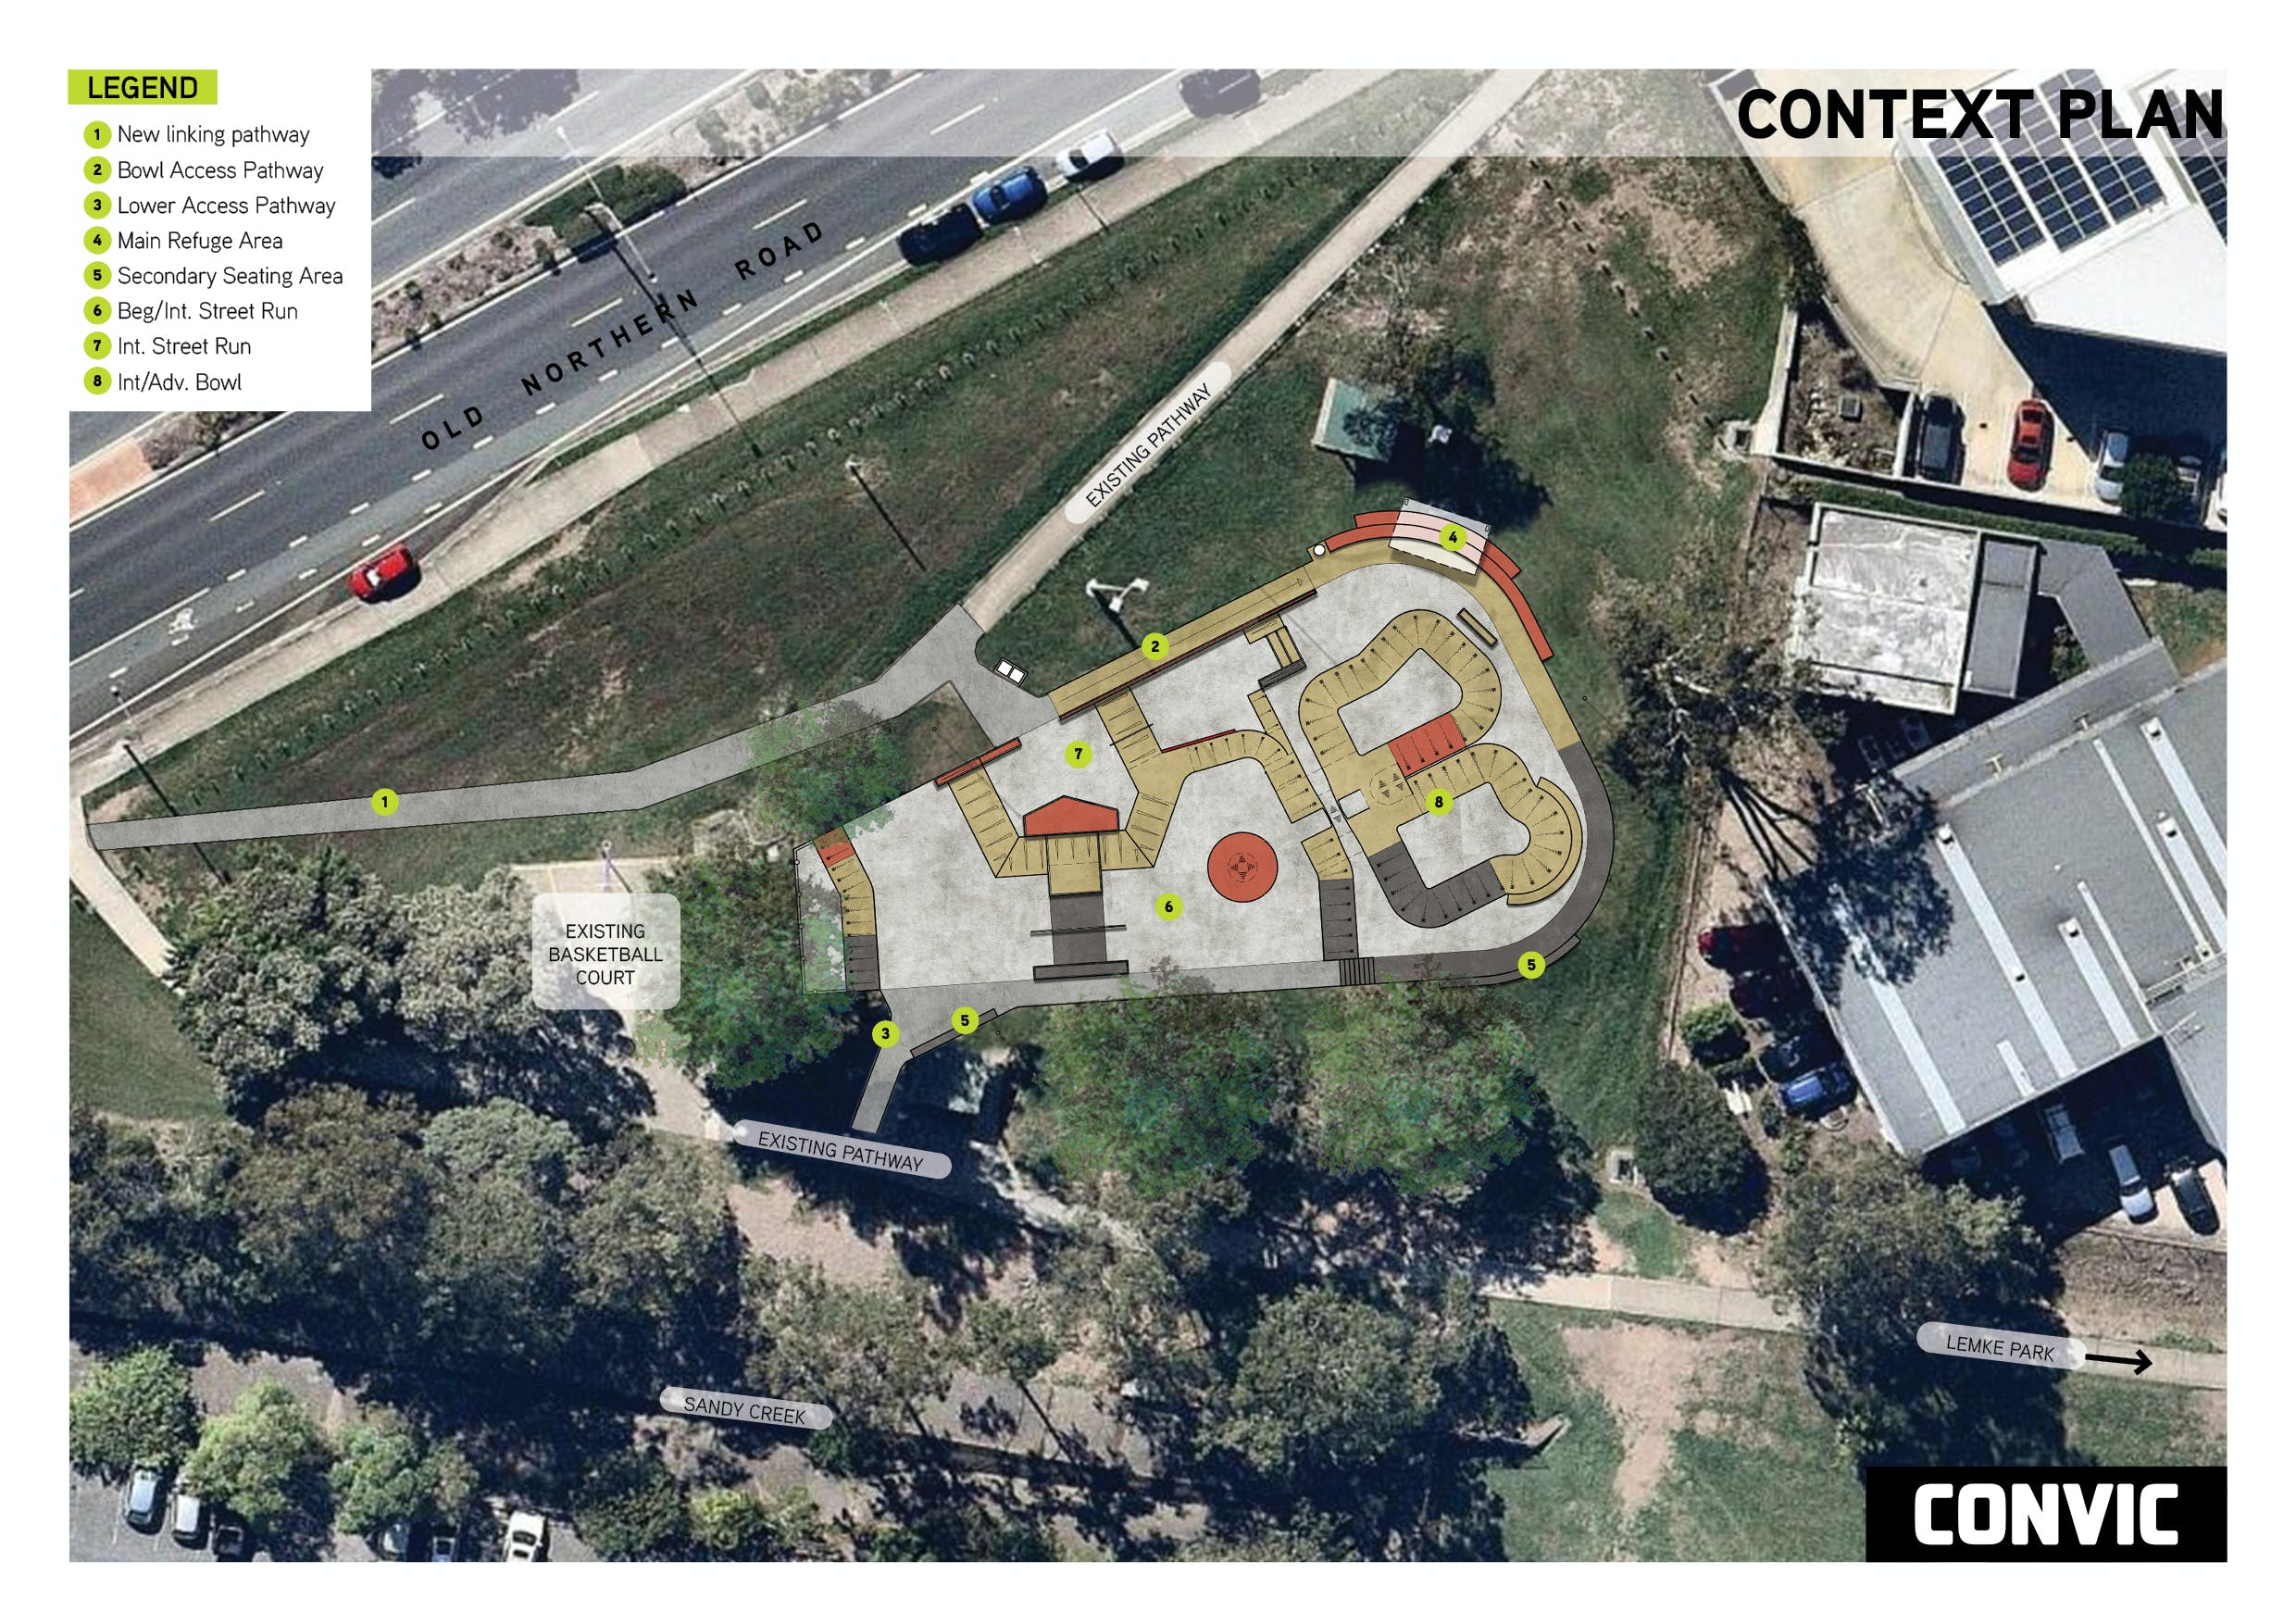 200818_20012_Albany Creek_Consult Images2 - Context Plan.jpg